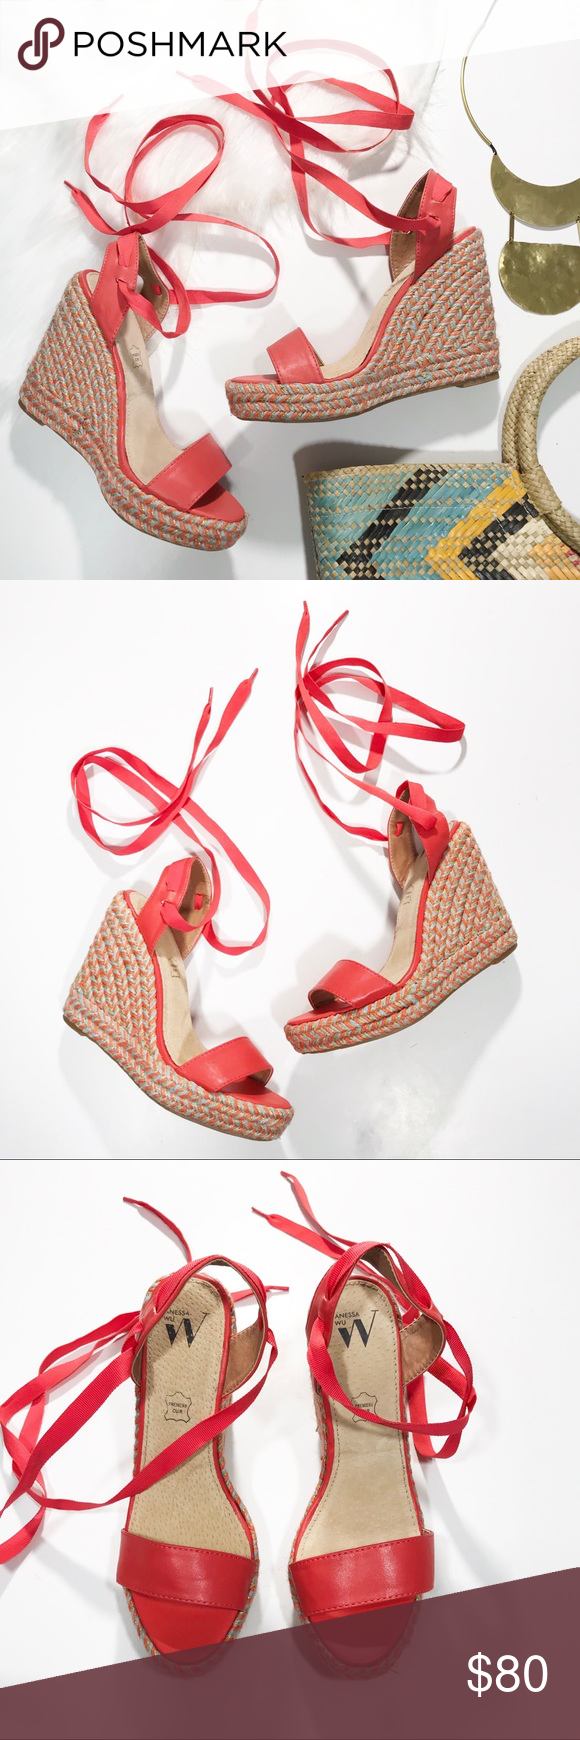 75a16f15eb85 Anthropologie Vanessa Wu Colorful Wedge Sandals Anthropologie Vanessa Wu  Colorful Wedge Sandals. Size 37